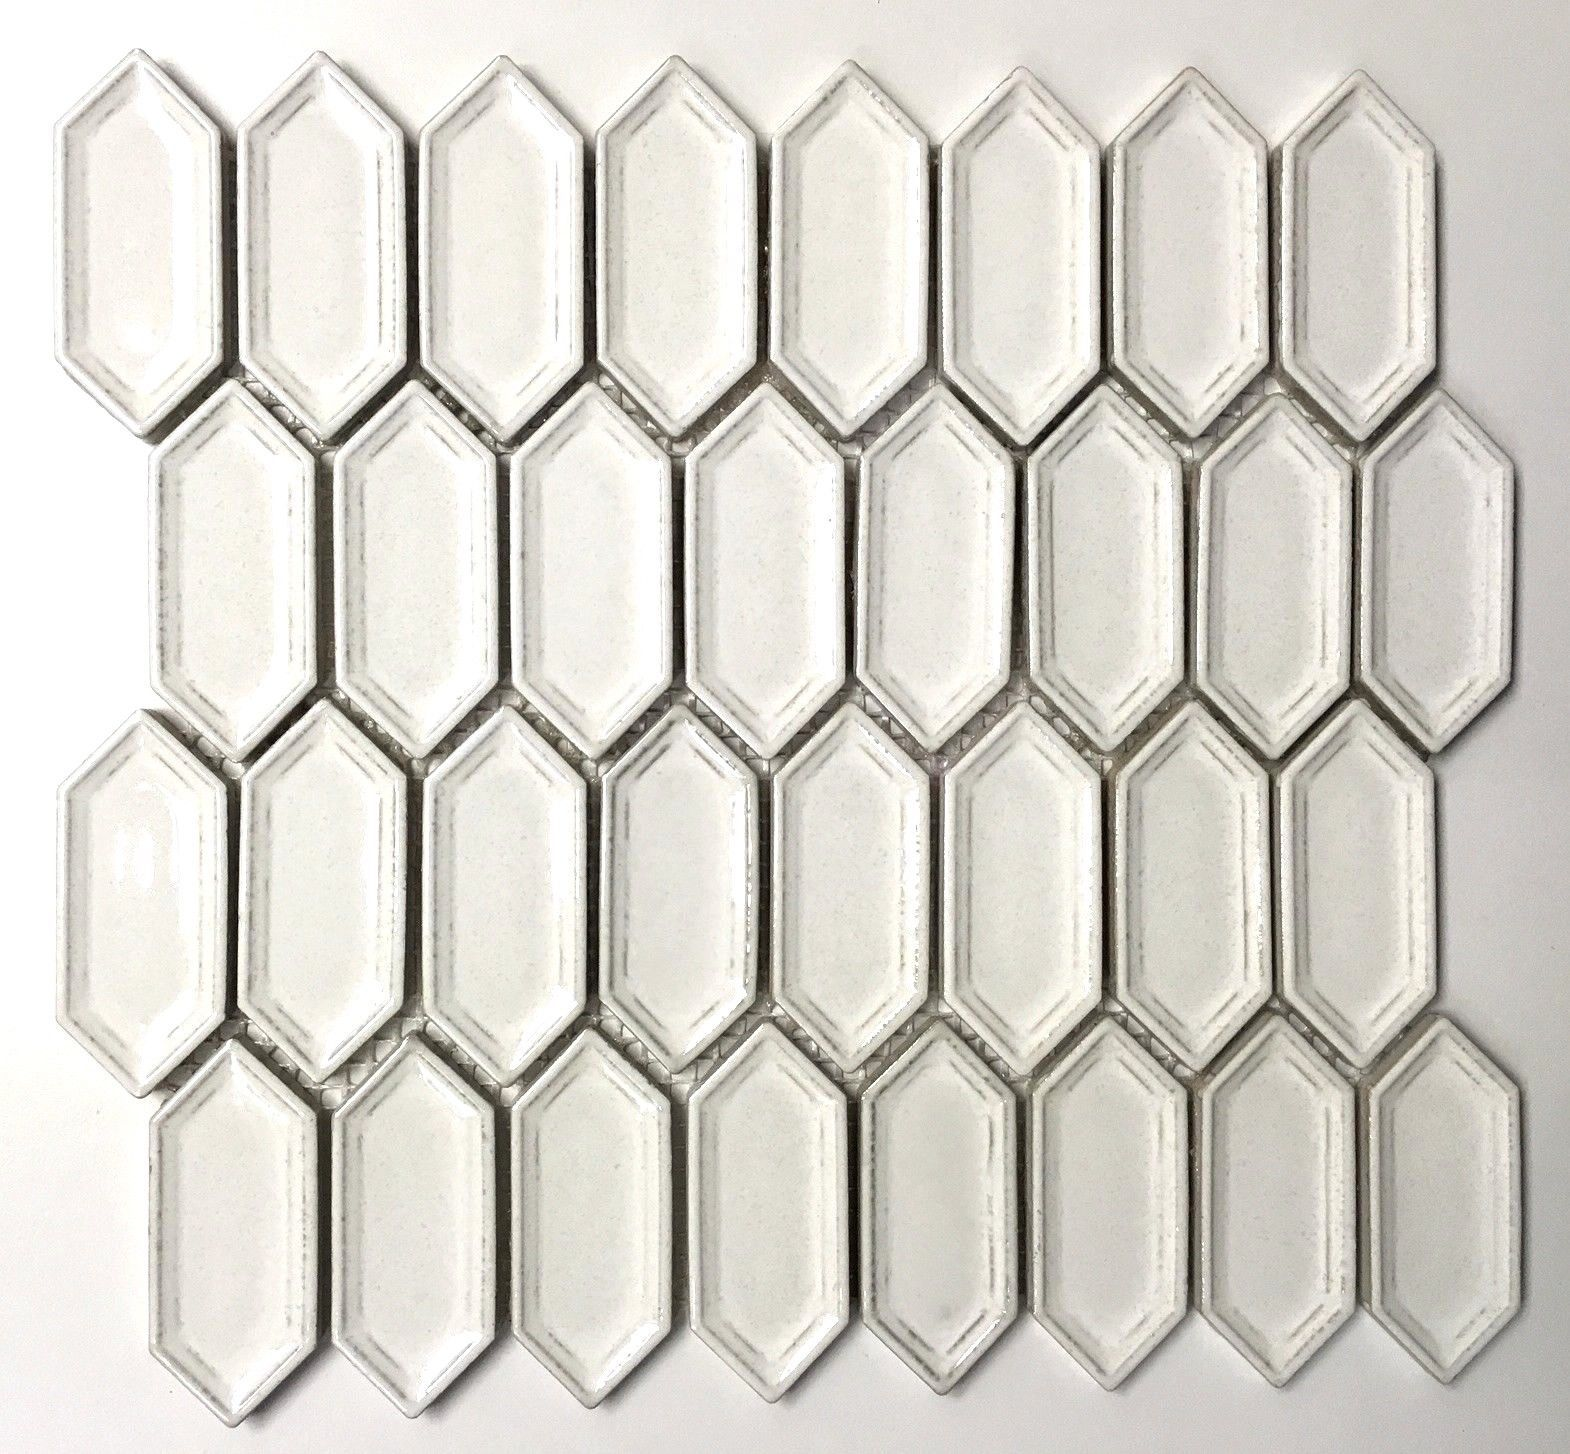 Elongated Toasted Coconut Hexagon Porcelain Mosaic Wall Tile